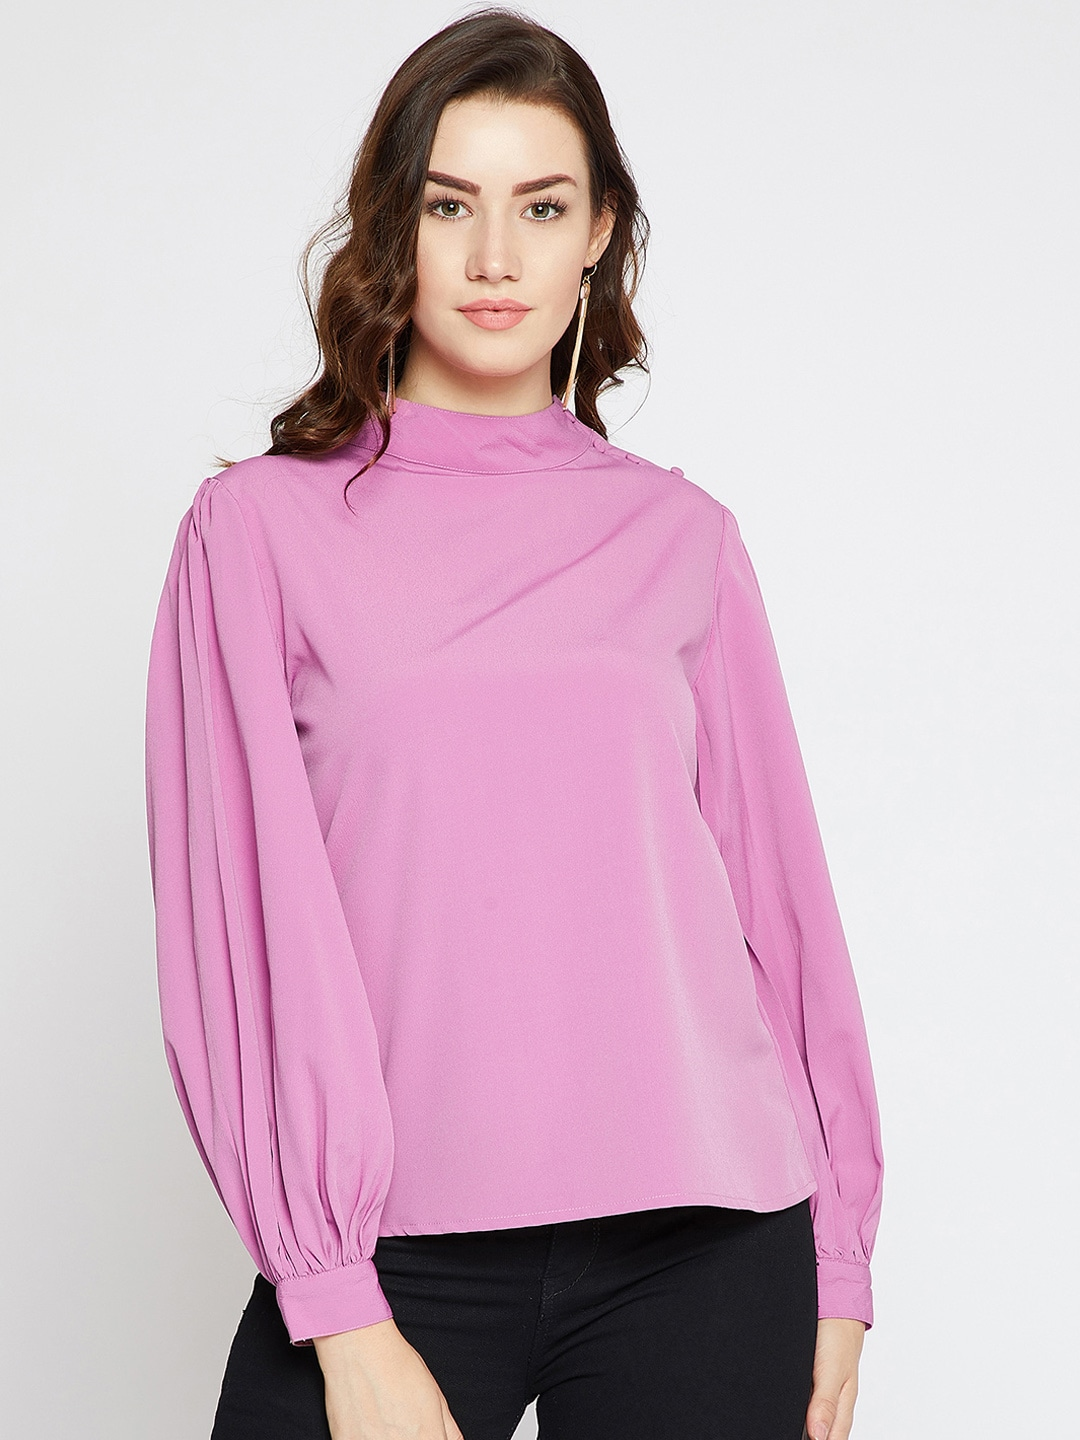 678e773dd609df High Neck - Buy High Neck online in India